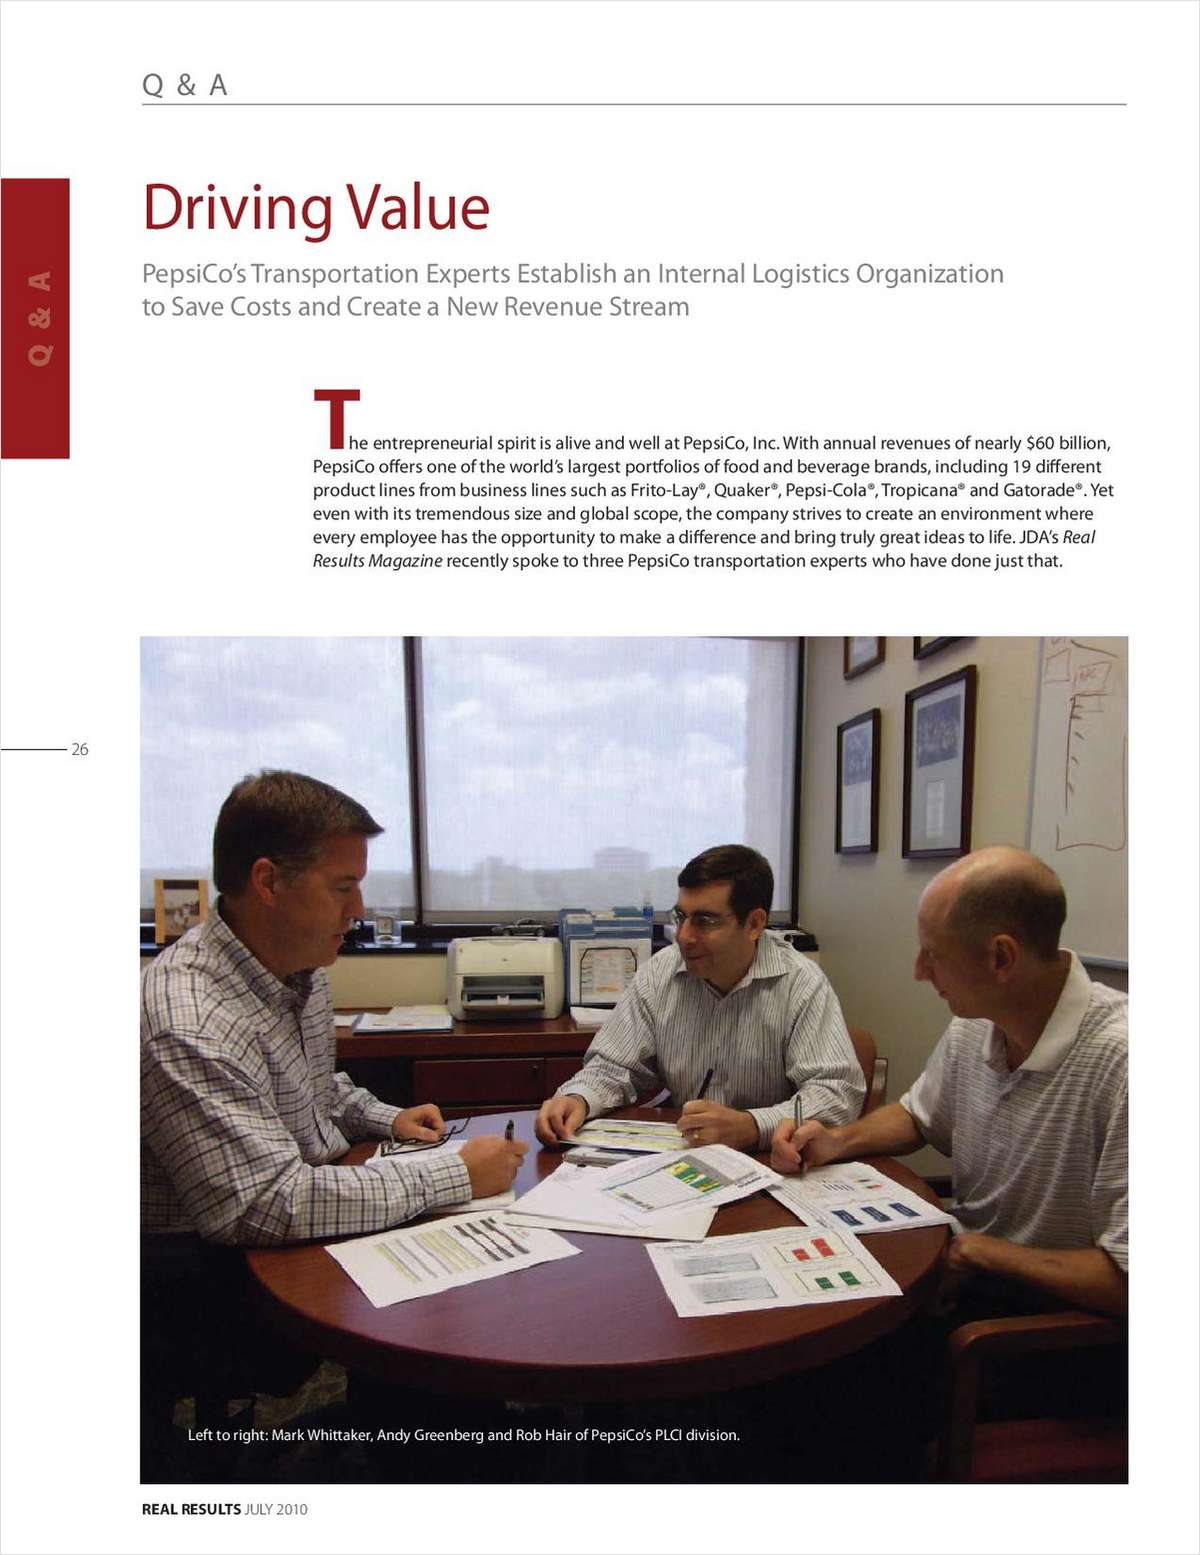 Driving Value, Free JDA Software Group Case Study